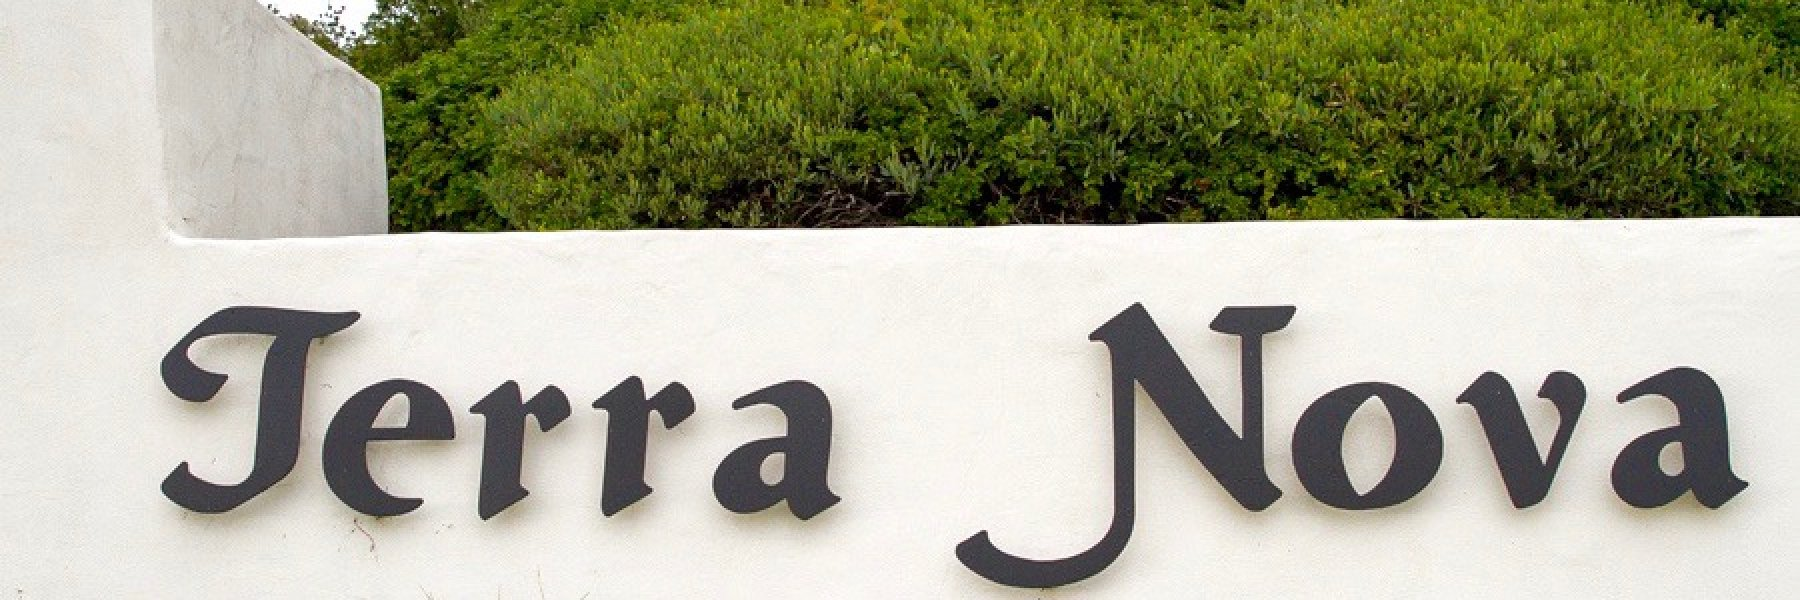 Terra Nova is a community of homes in Chula Vista